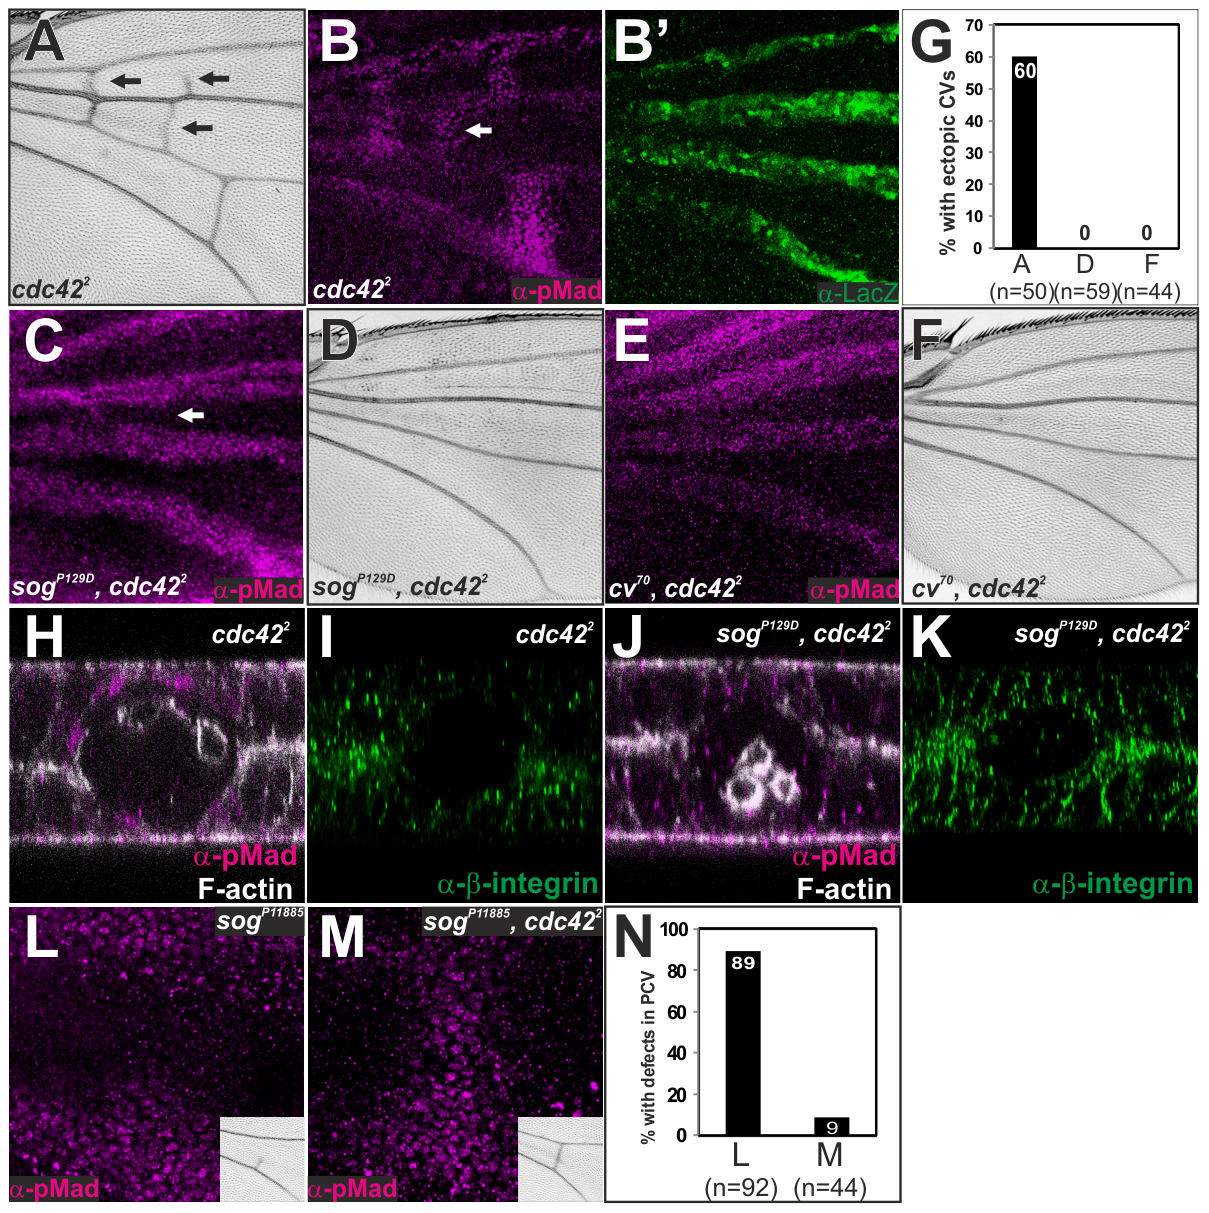 Sog-Cv-dependent BMP signaling is induced along ectopic wing vein morphogenesis by loss of <i>cdc42</i>.